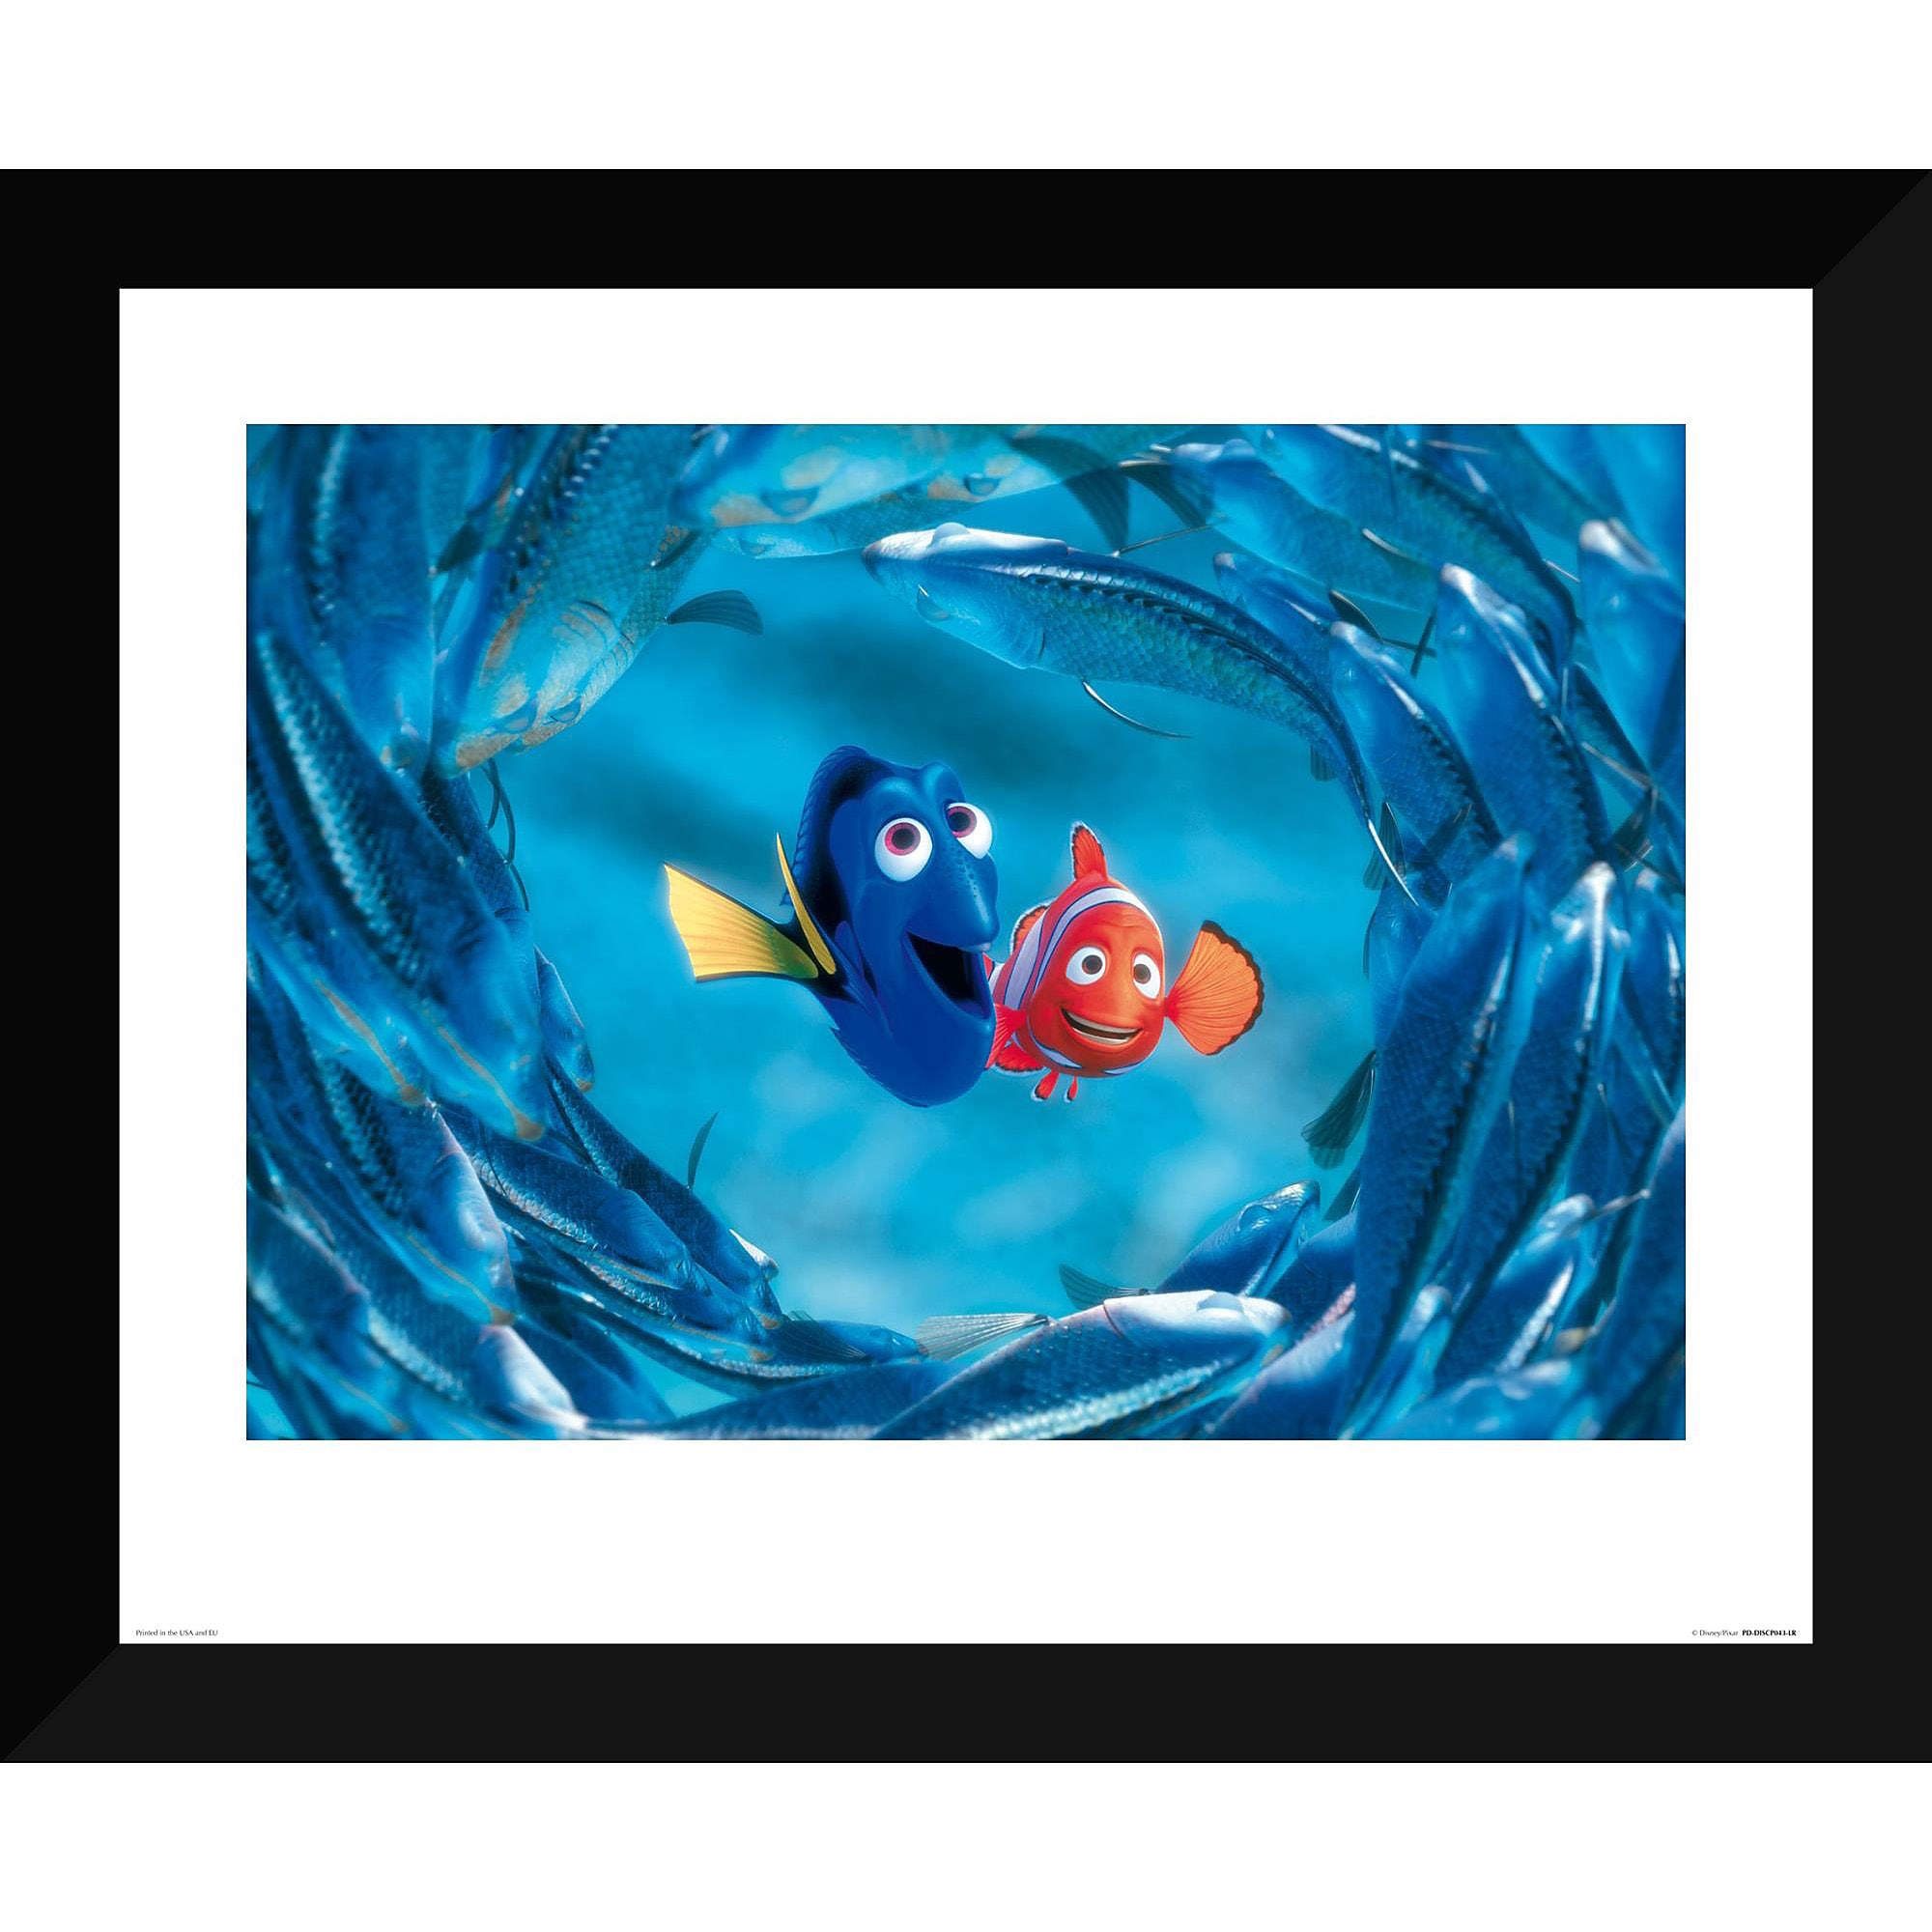 Finding Nemo ''The Moonfish entertain Marlin and Dory'' Giclé